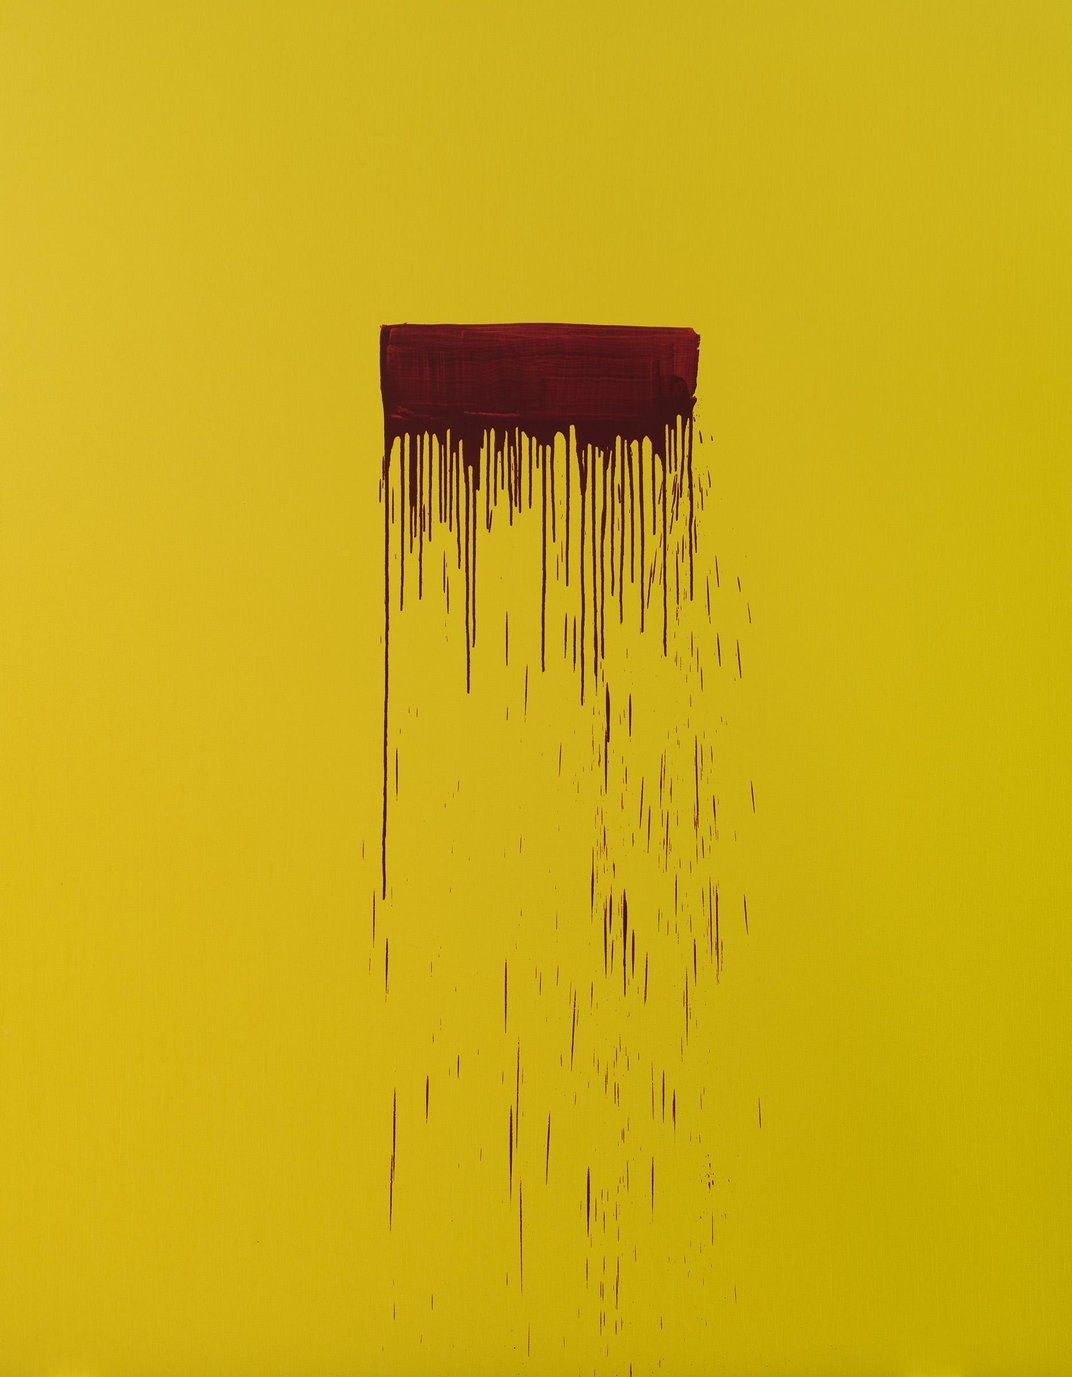 Yellow canvas with red